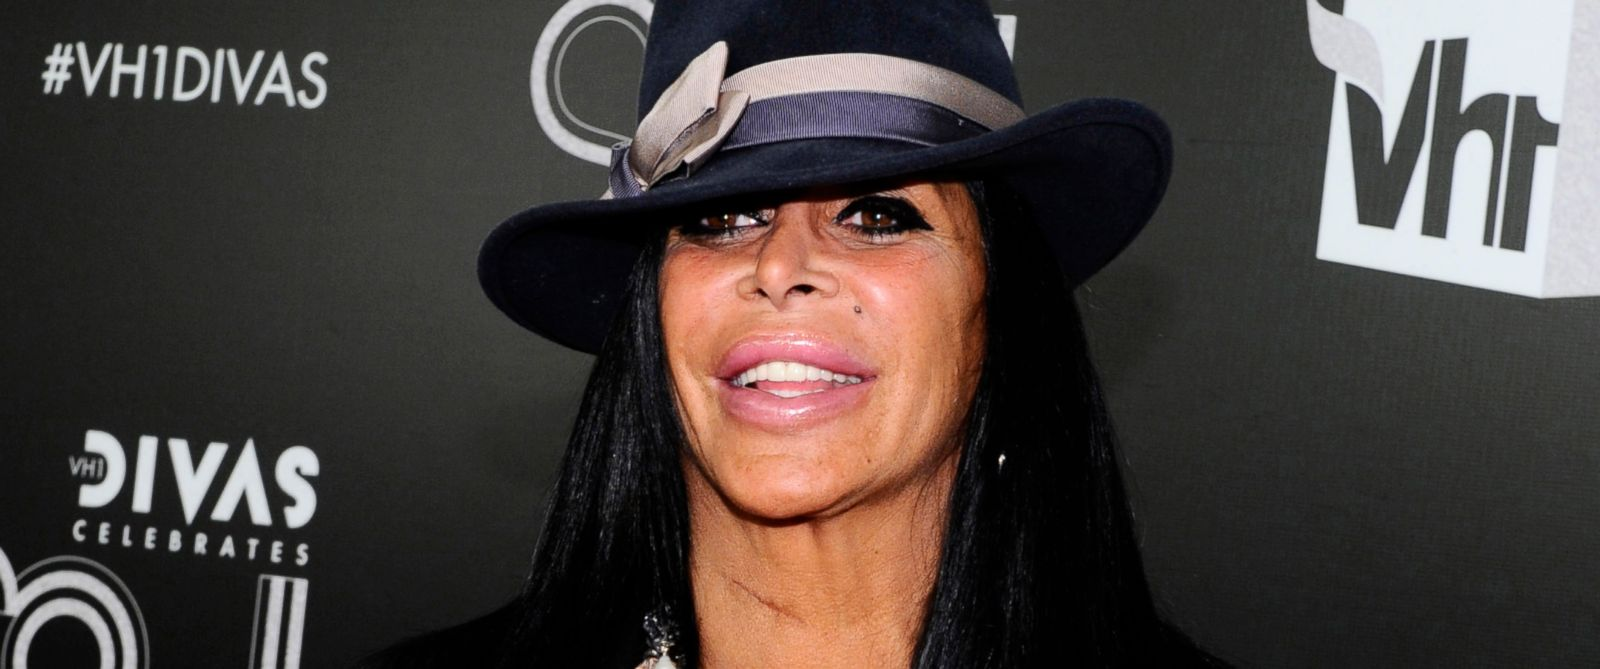 "PHOTO: Angela Raiola, better known as Big Ang, arrives at ""Vh1 Divas Celebrates Soul"" in New York, Dec. 18, 2011."